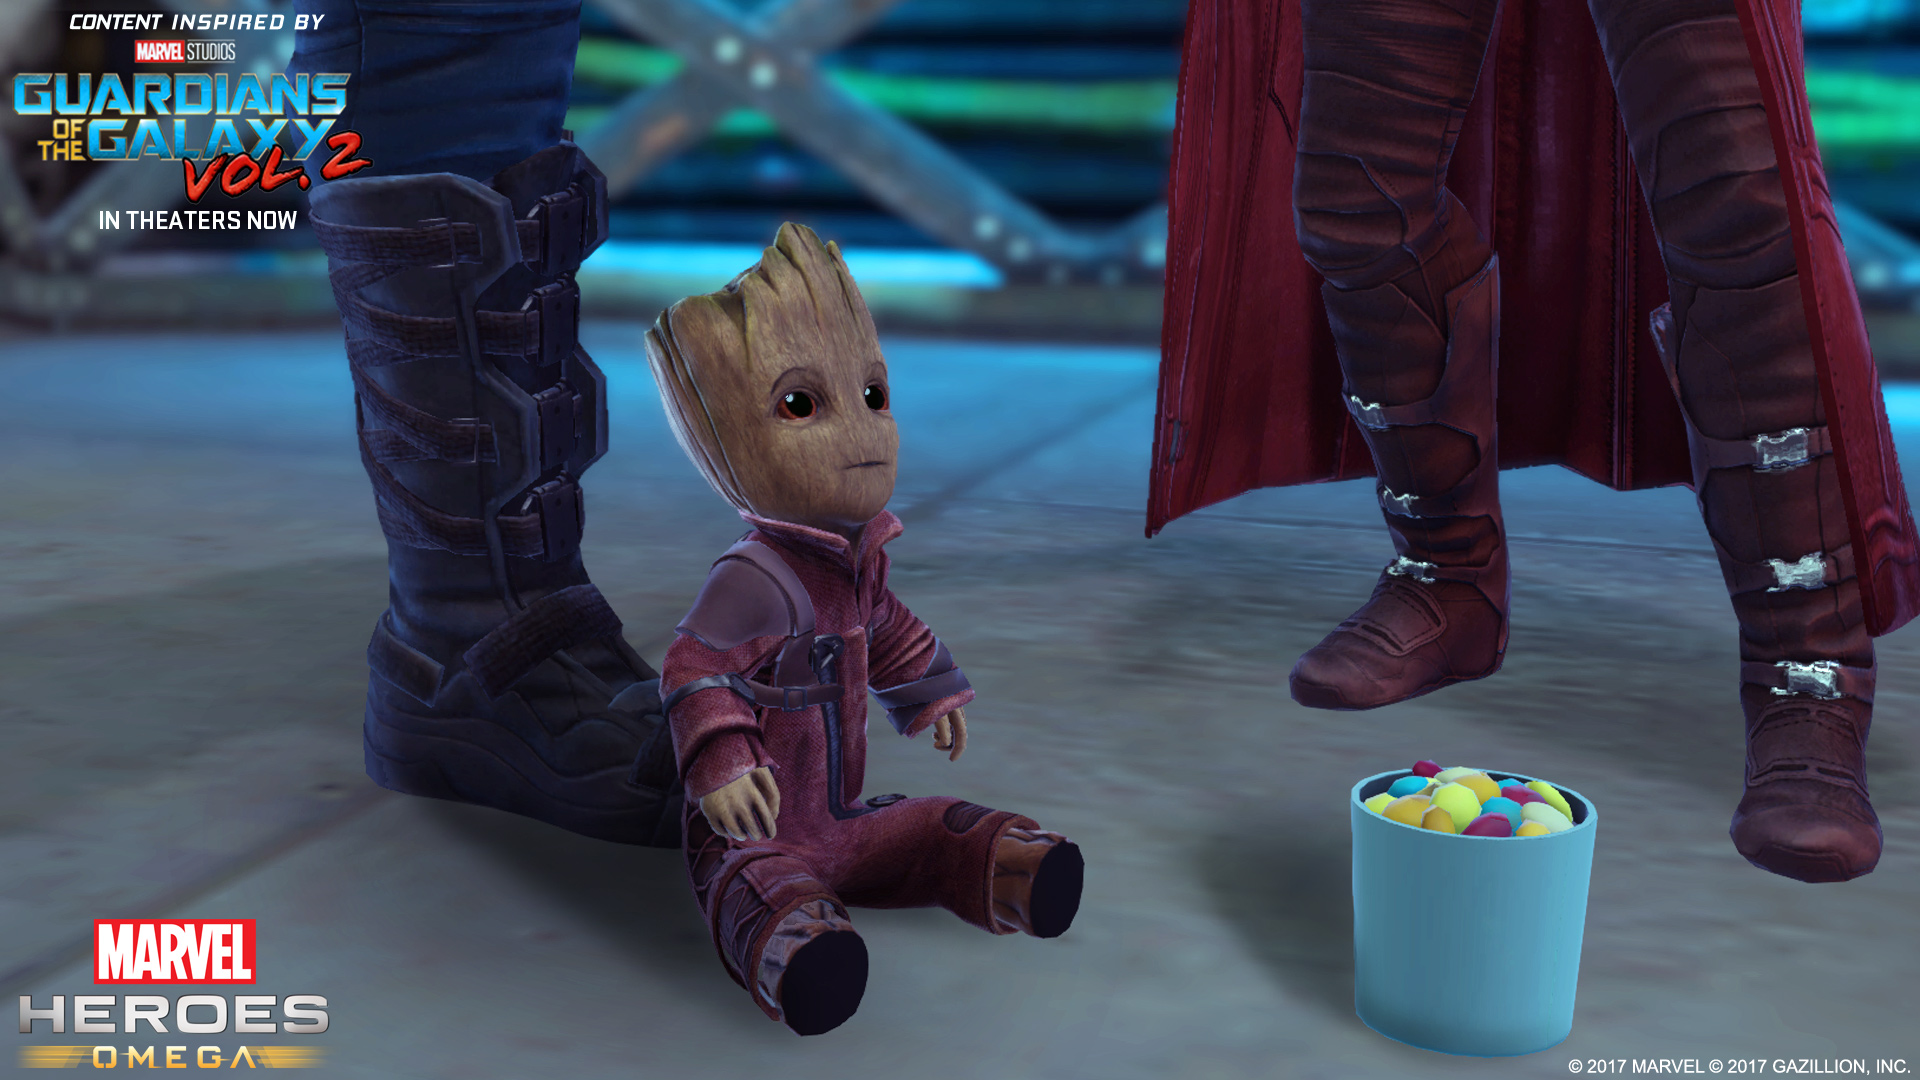 Marvel Heroes' Guardians of the Galaxy Vol  2 promo video is